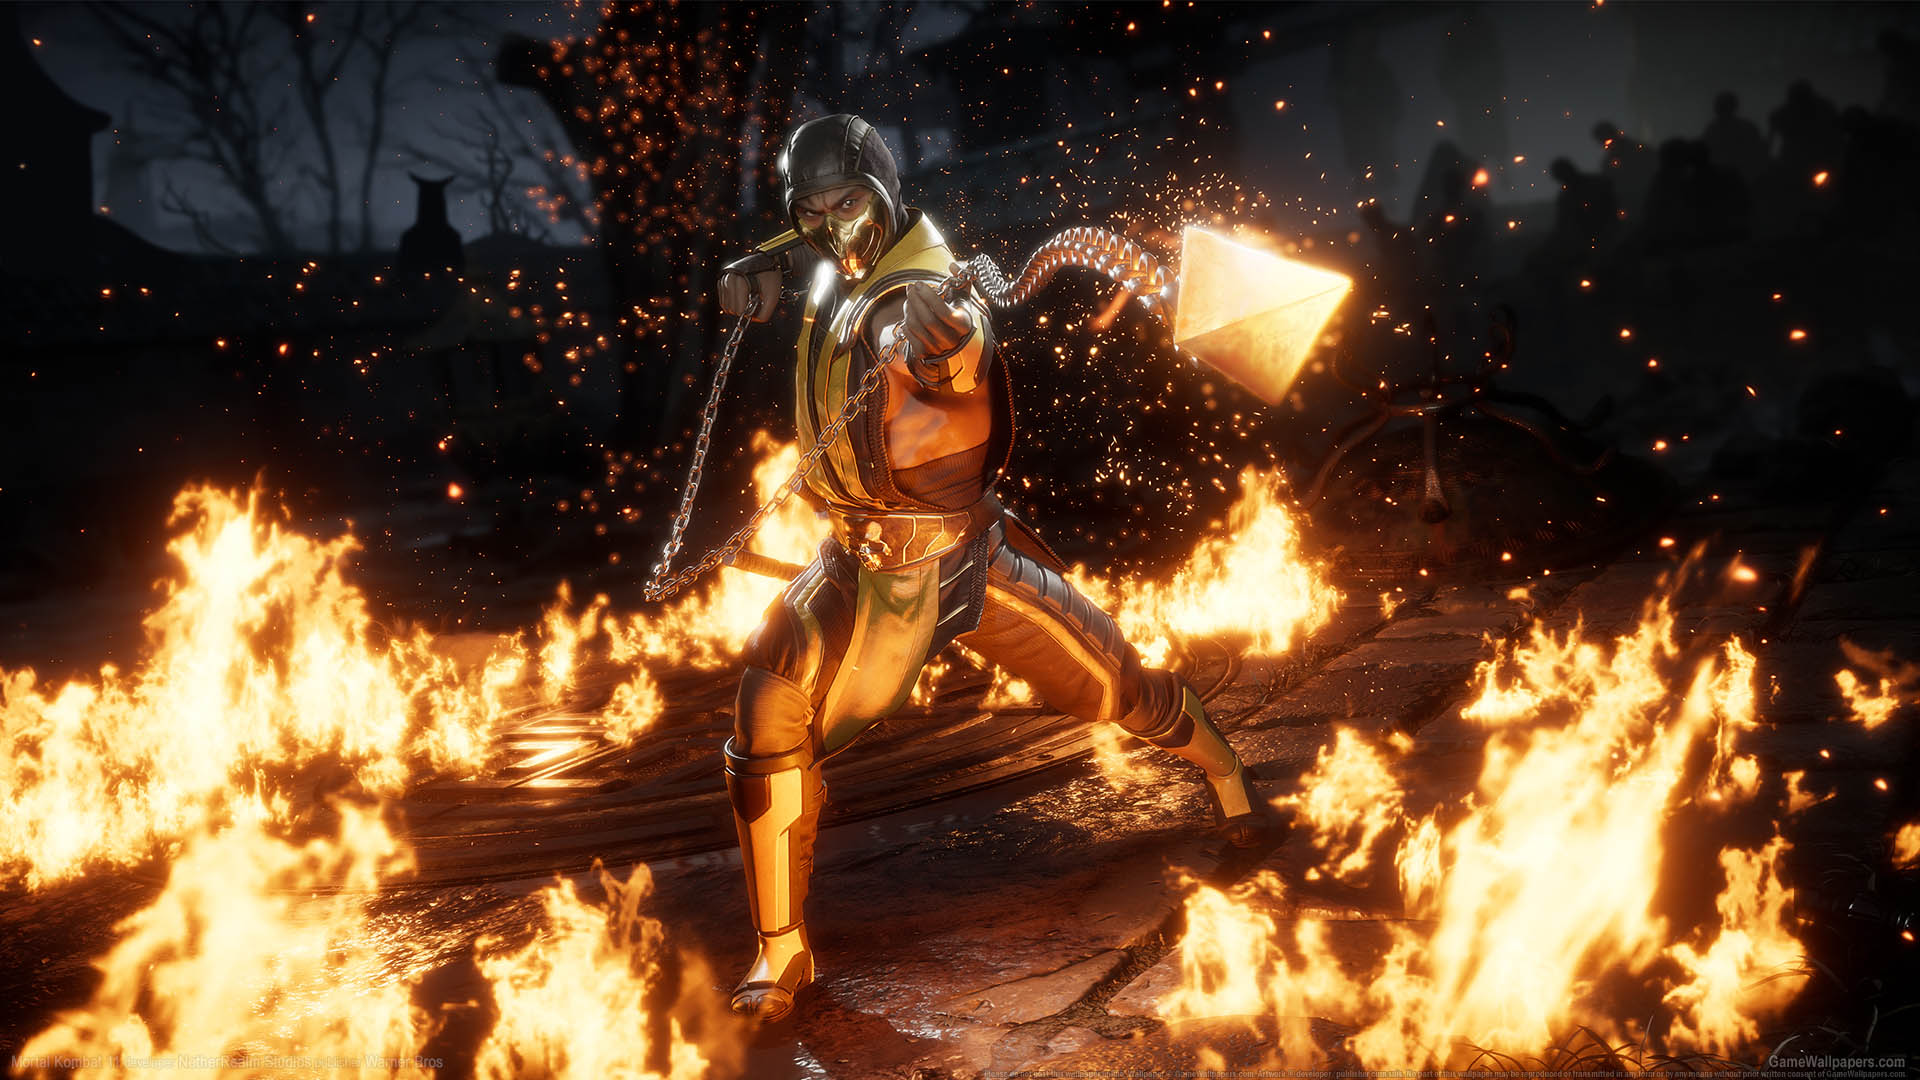 Mortal Kombat 11 wallpaper 01 1920x1080